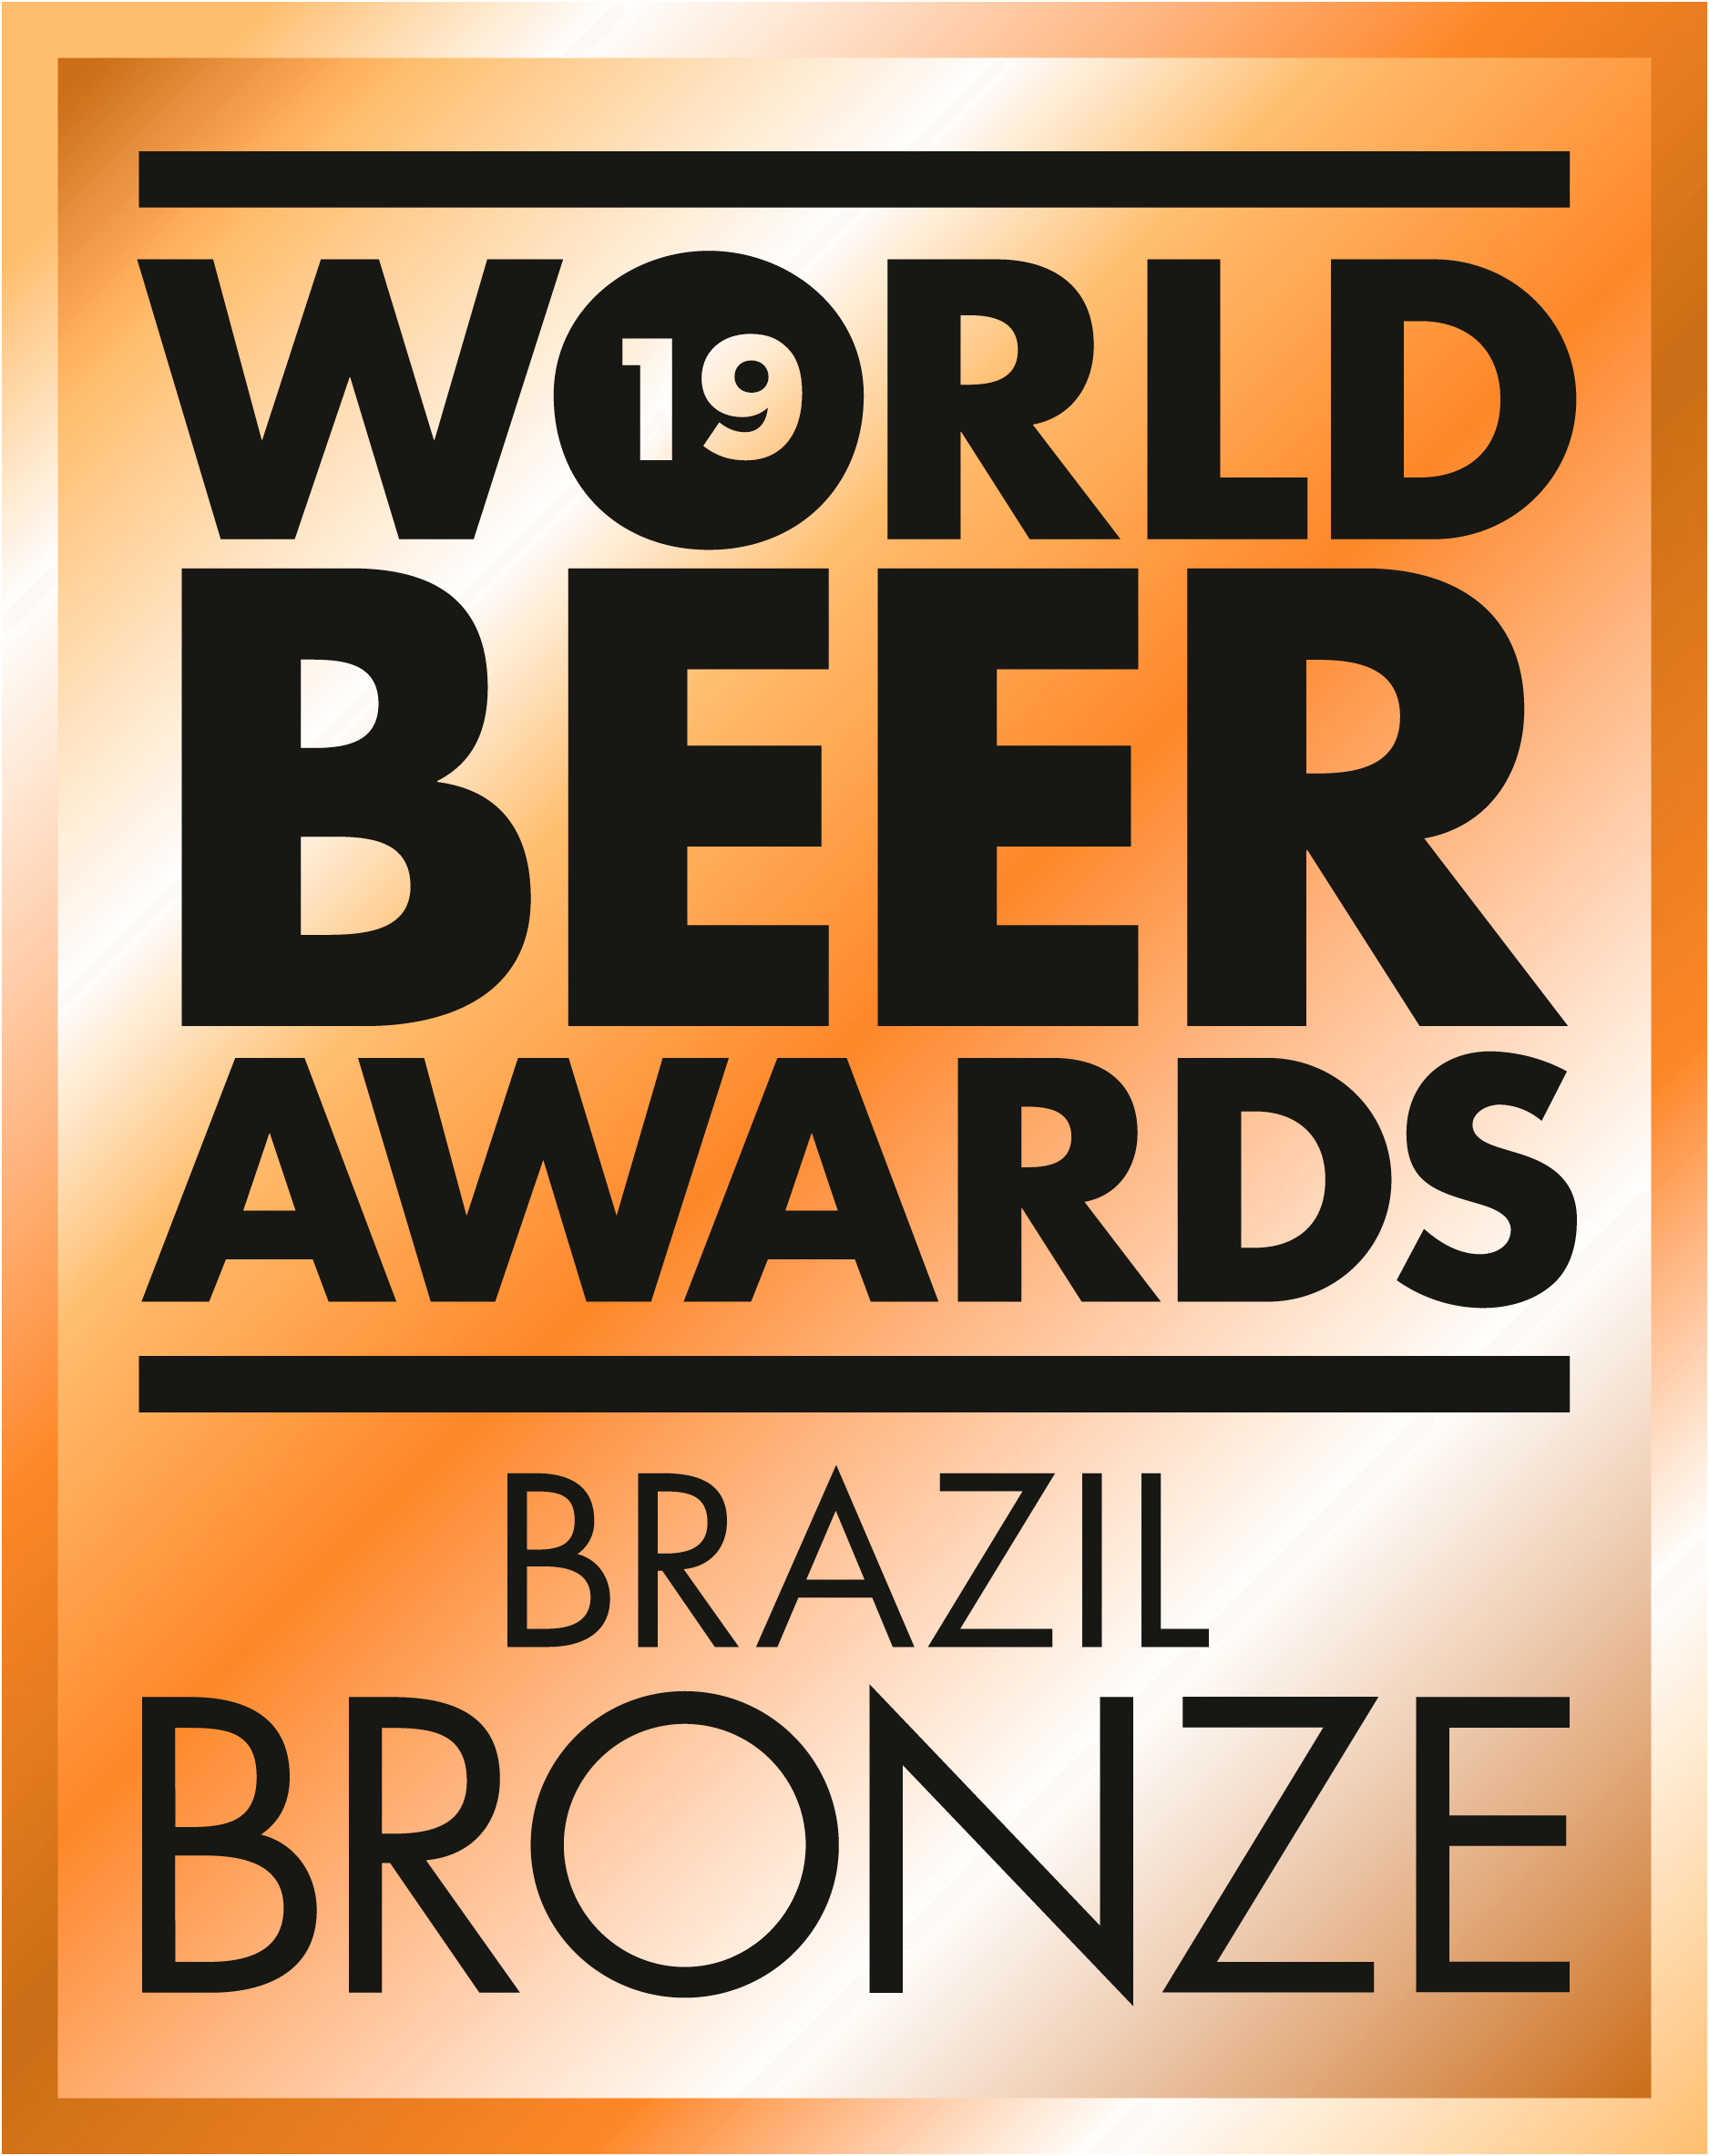 2019 World Beer Awards BRONZE